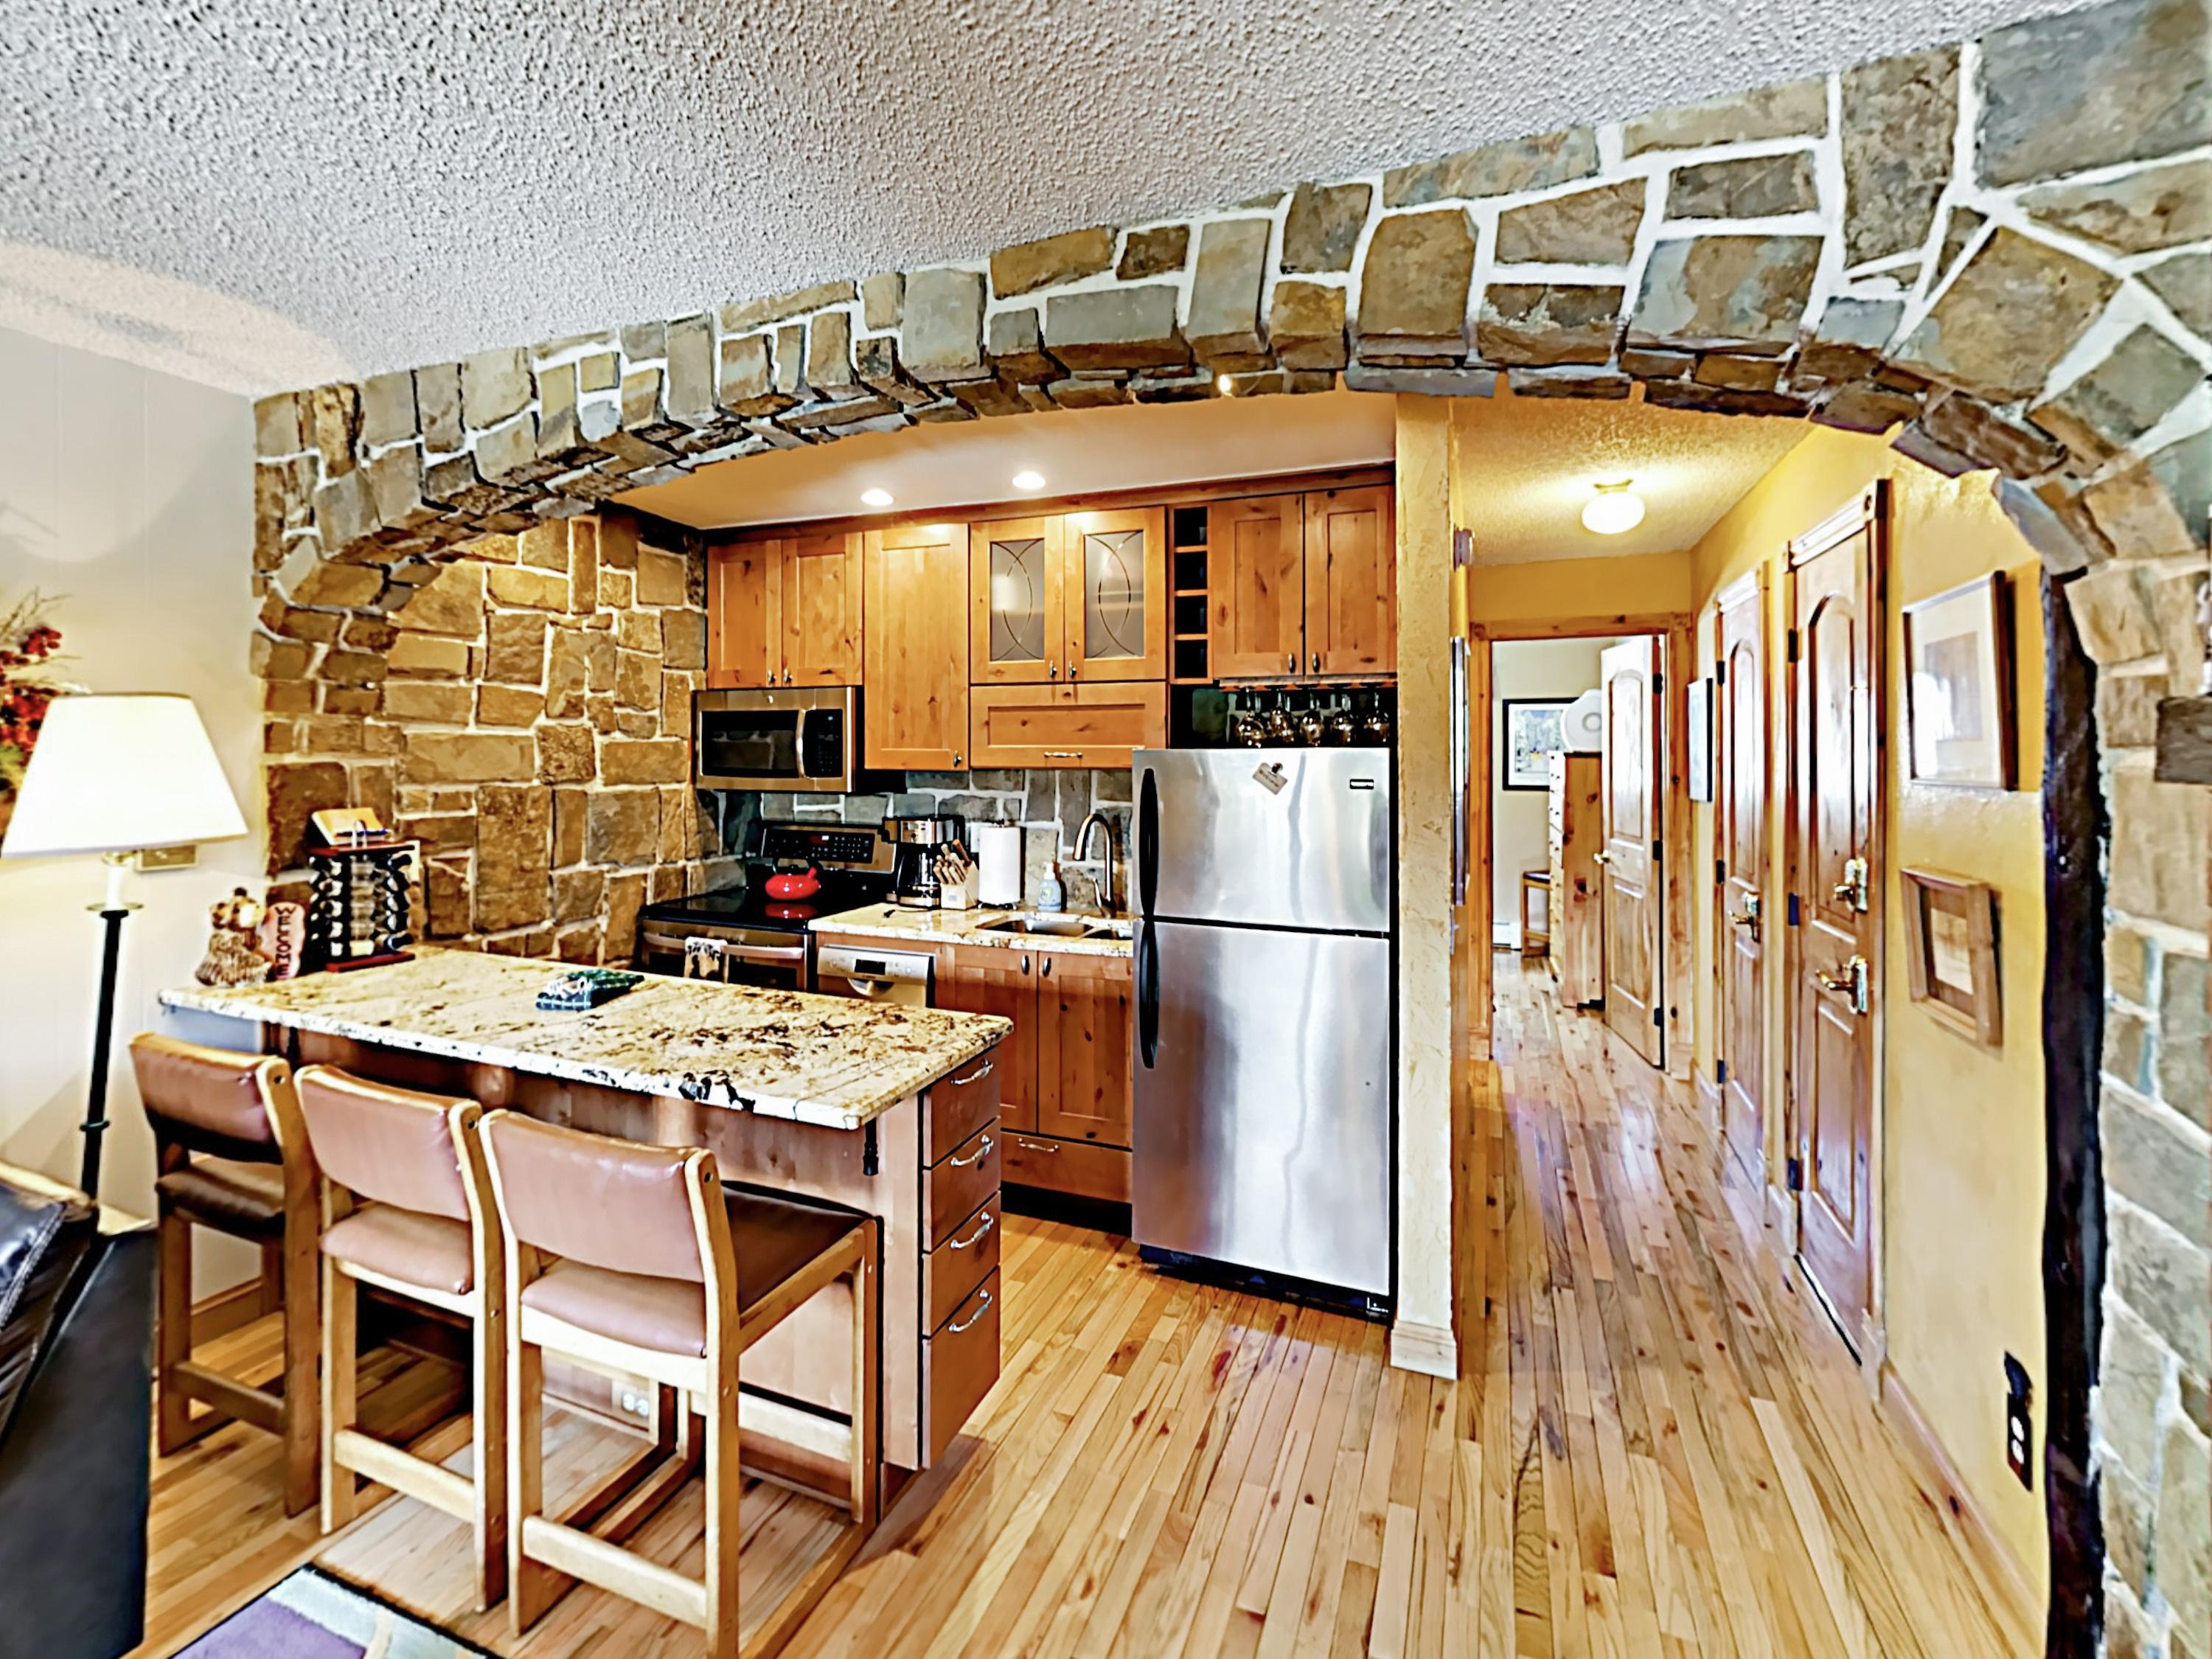 This remodeled unit features stunning stonework, hardwood floors, and granite countertops.